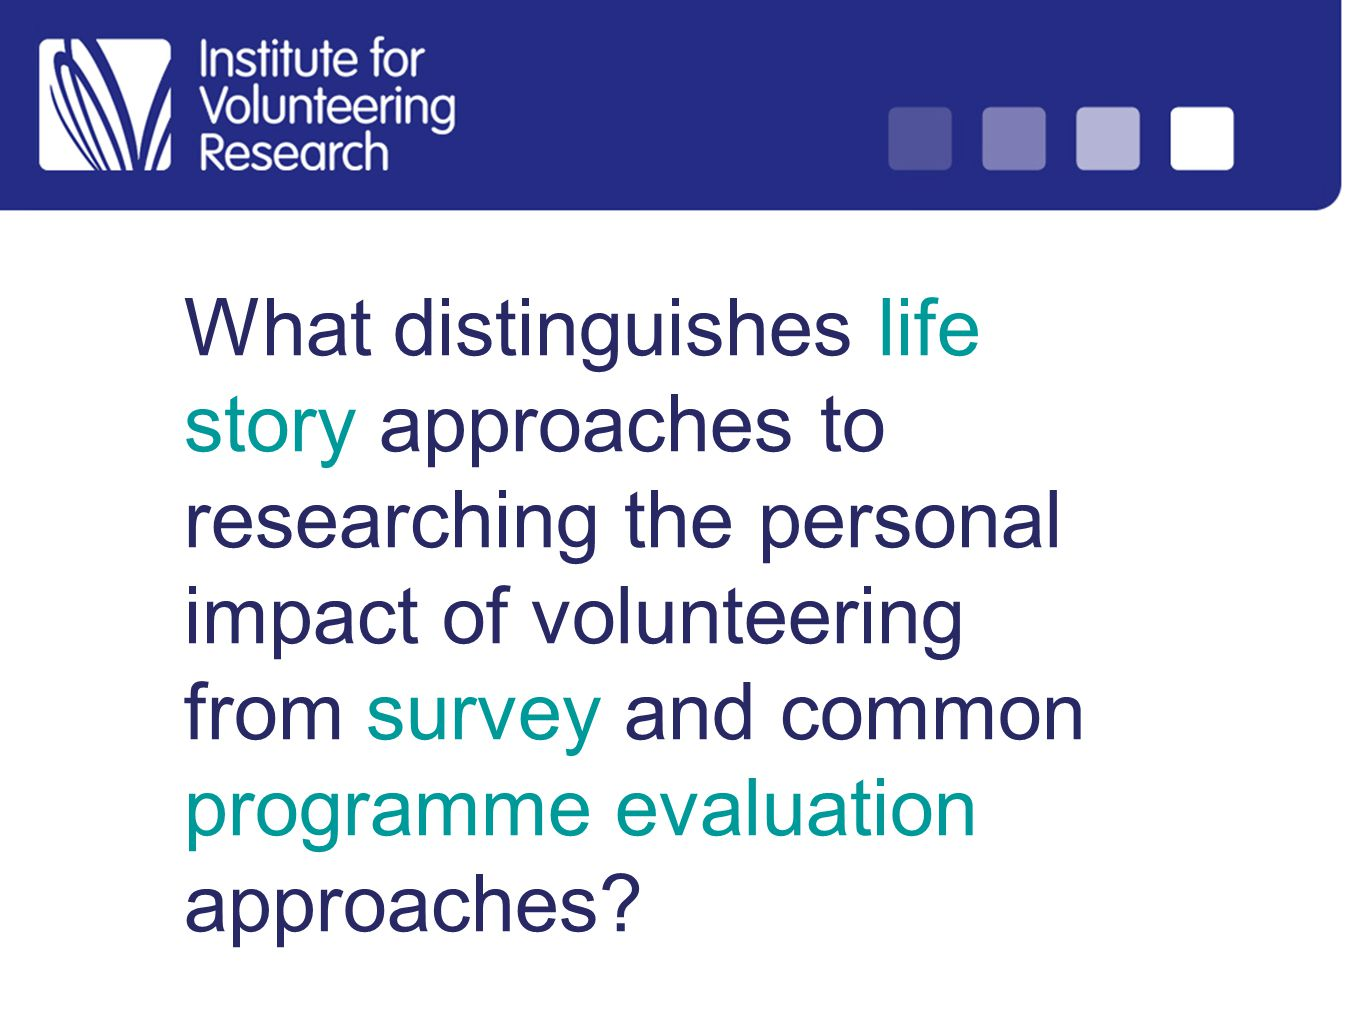 What distinguishes life story approaches to researching the personal impact of volunteering from survey and common programme evaluation approaches